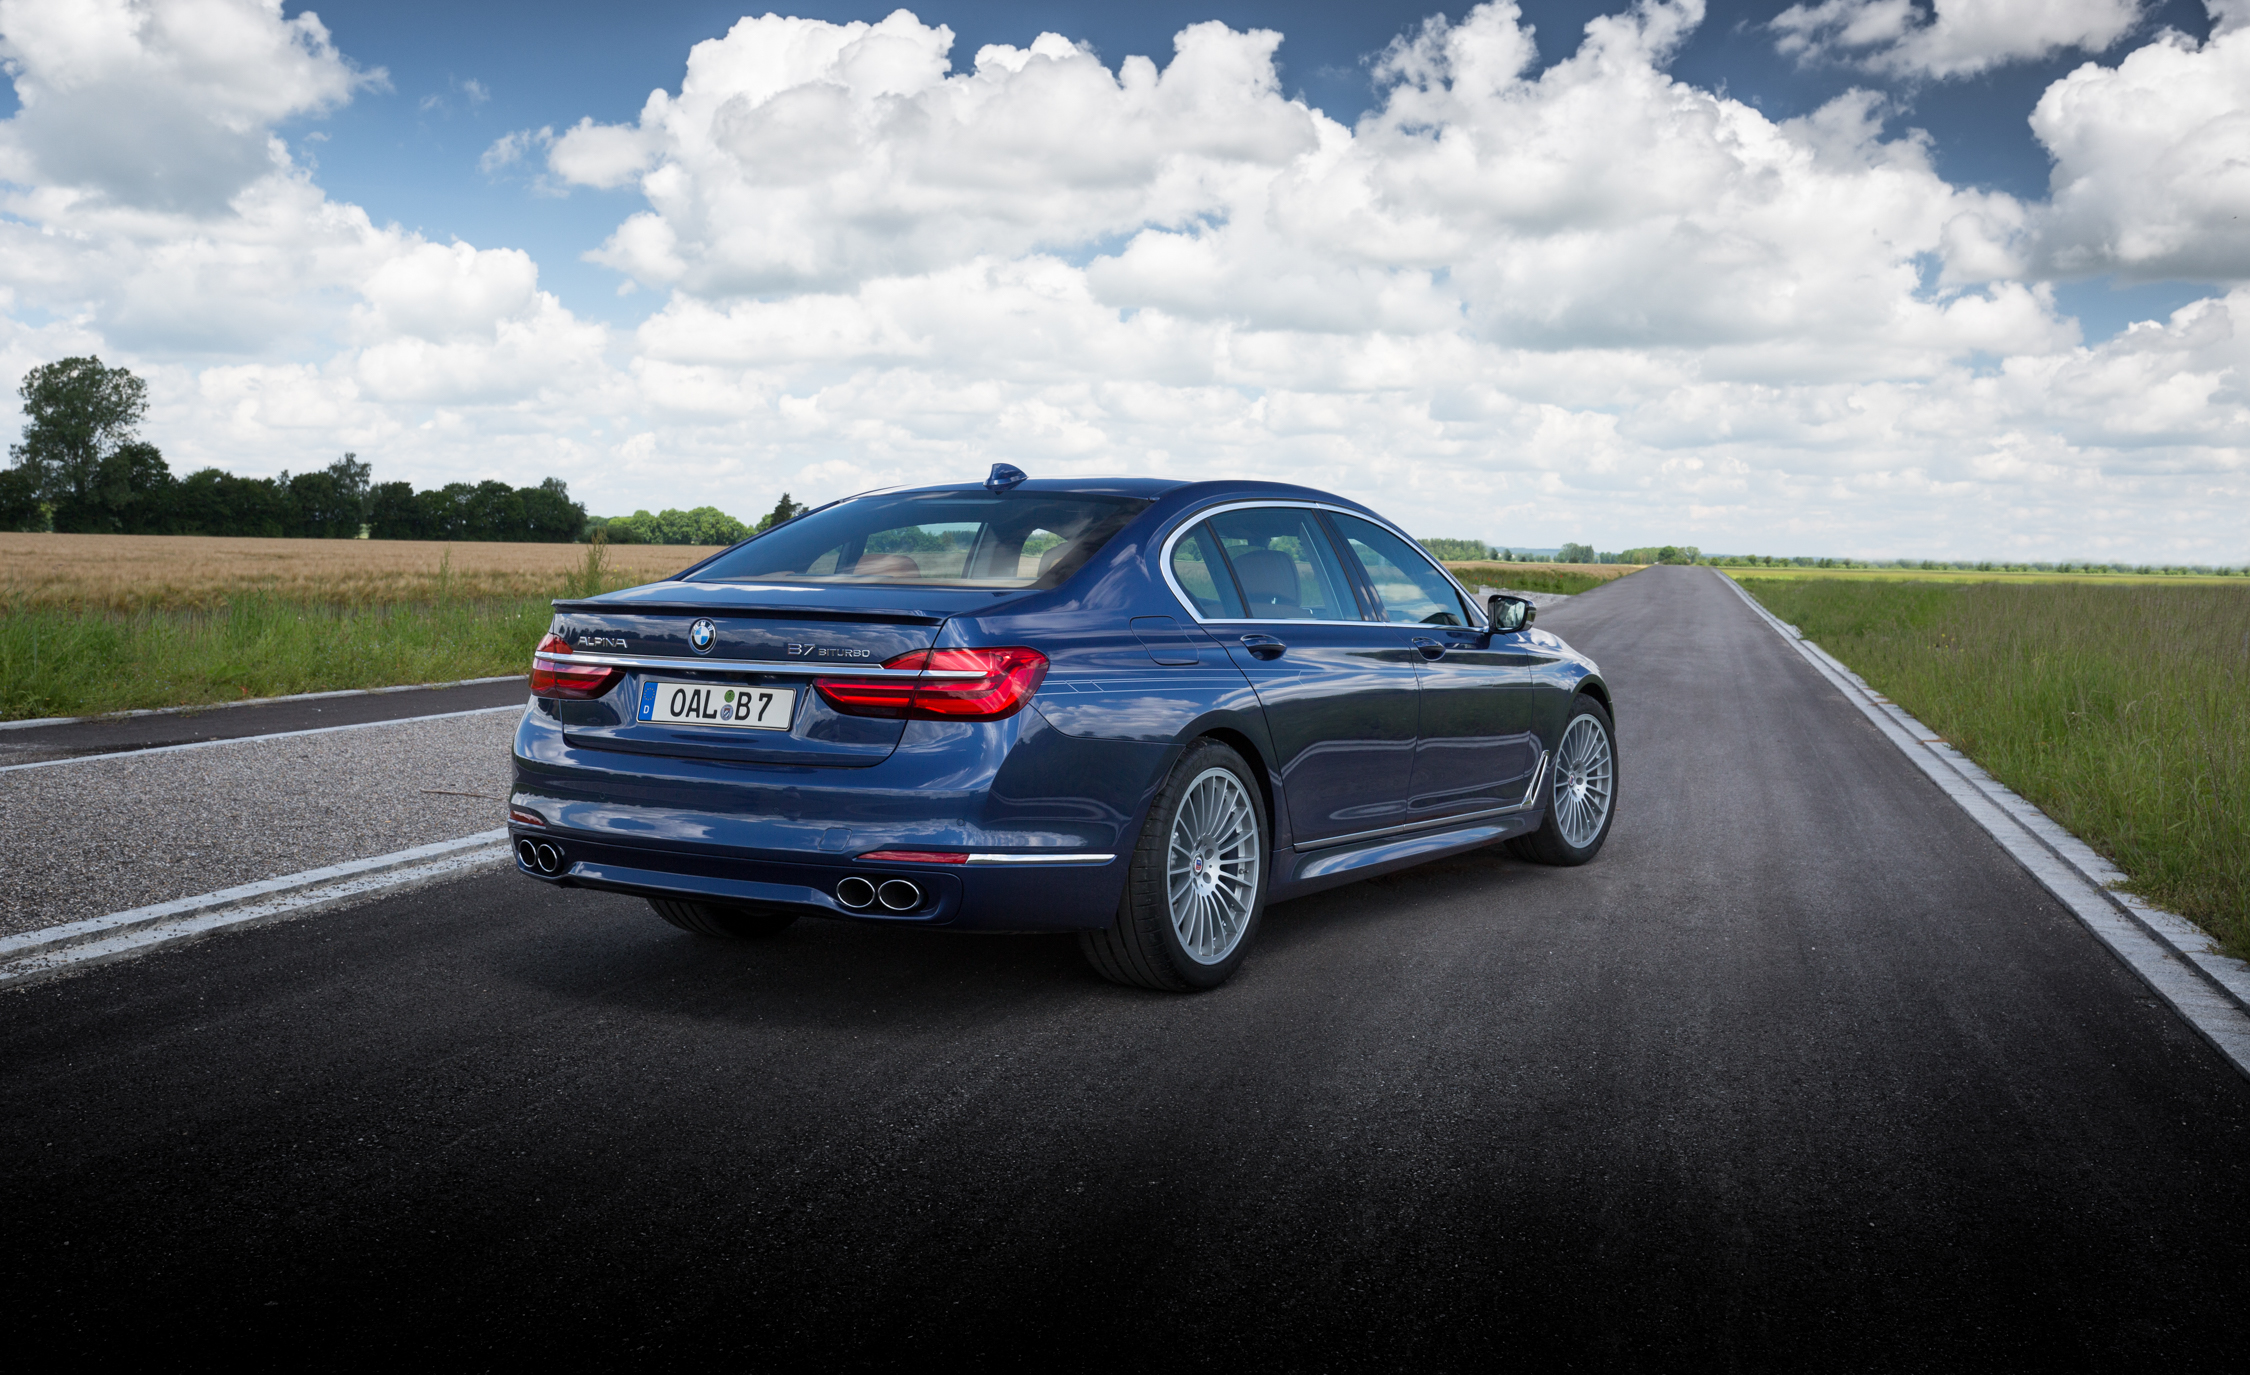 2017 BMW Alpina B7 Exterior Side And Rear (Photo 10 of 45)